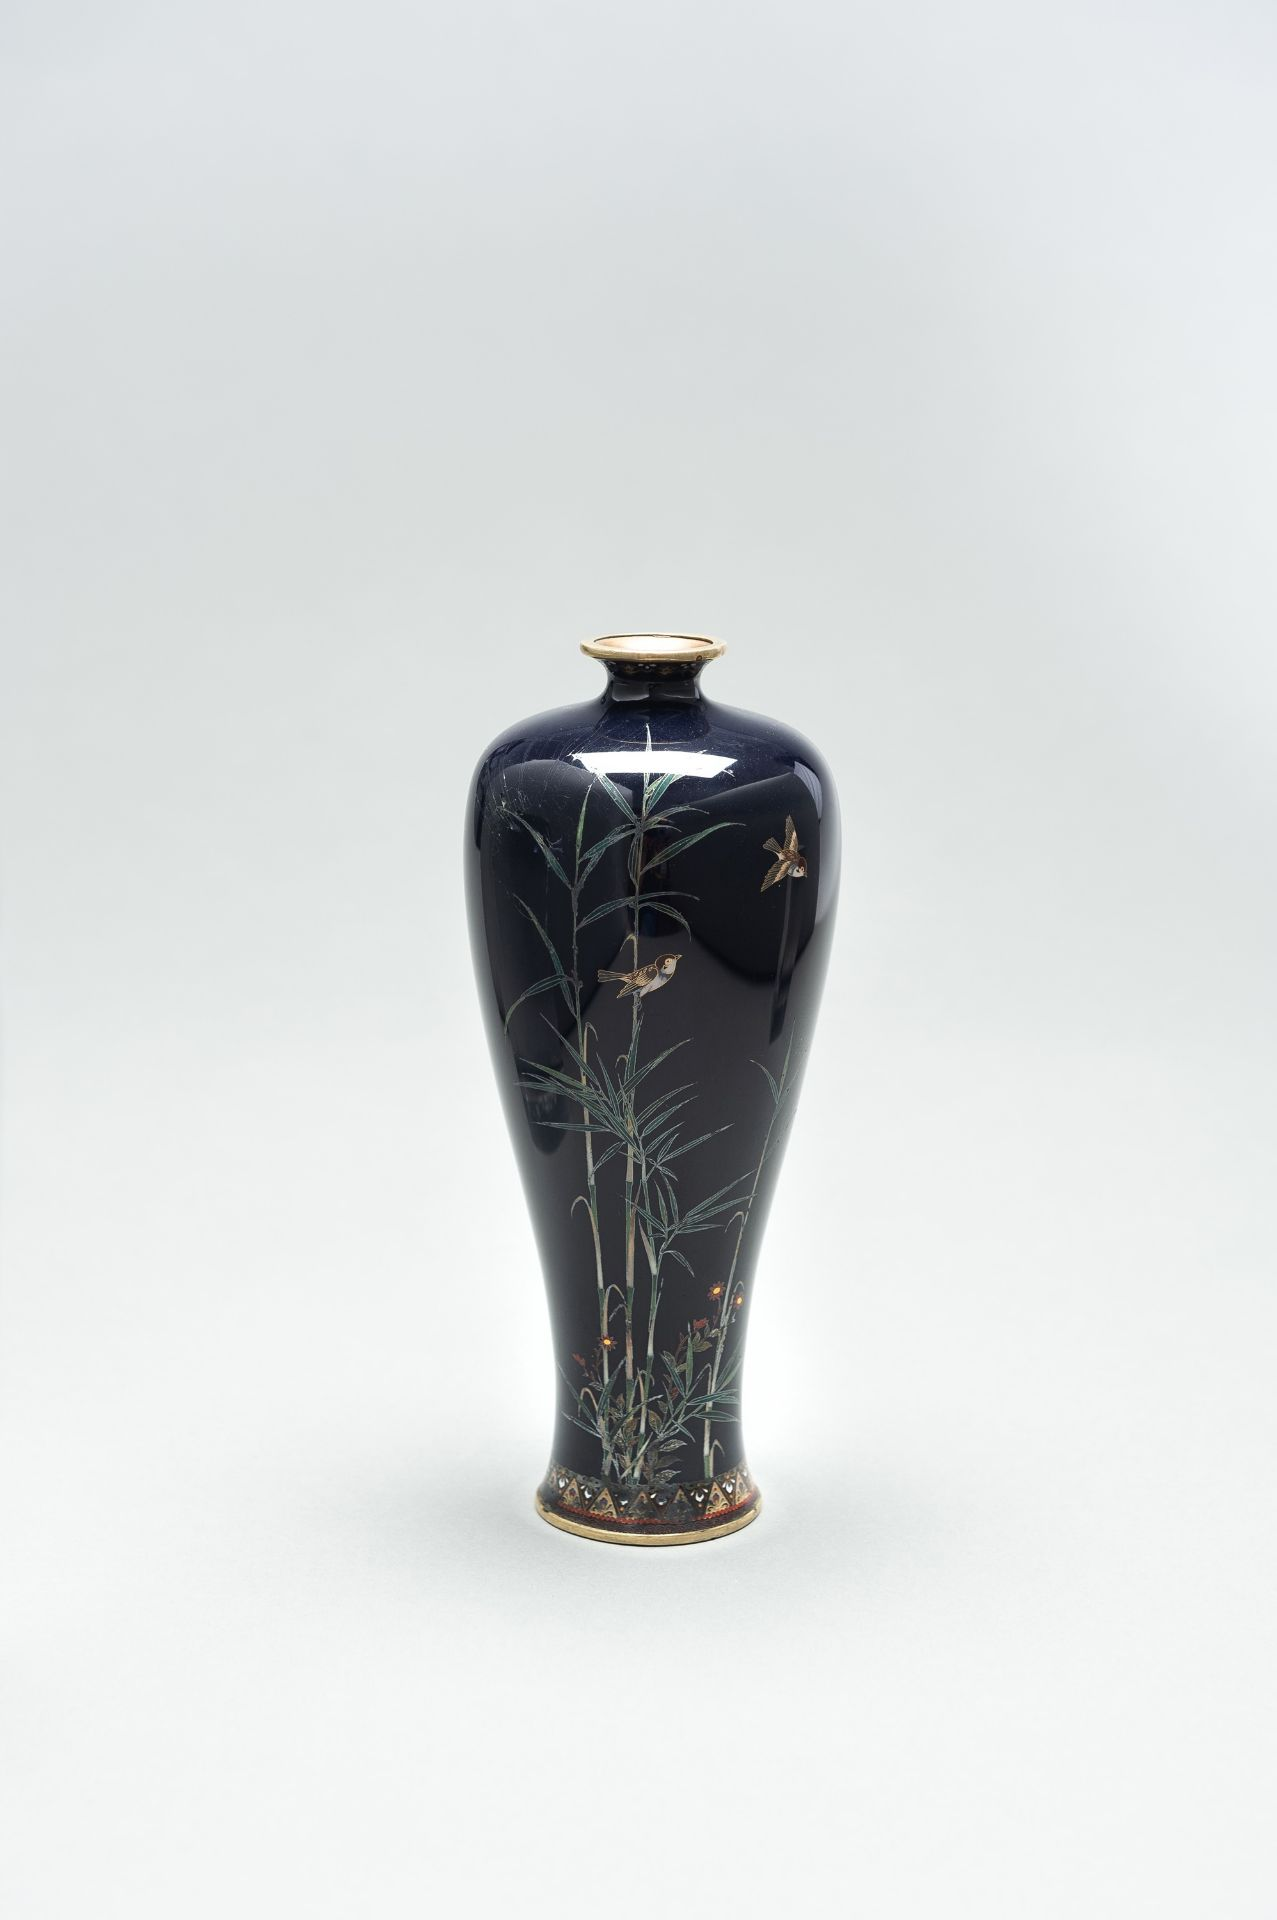 A CLOISONNE ENAMEL VASE WITH BAMBOO AND BIRDS - Image 3 of 8